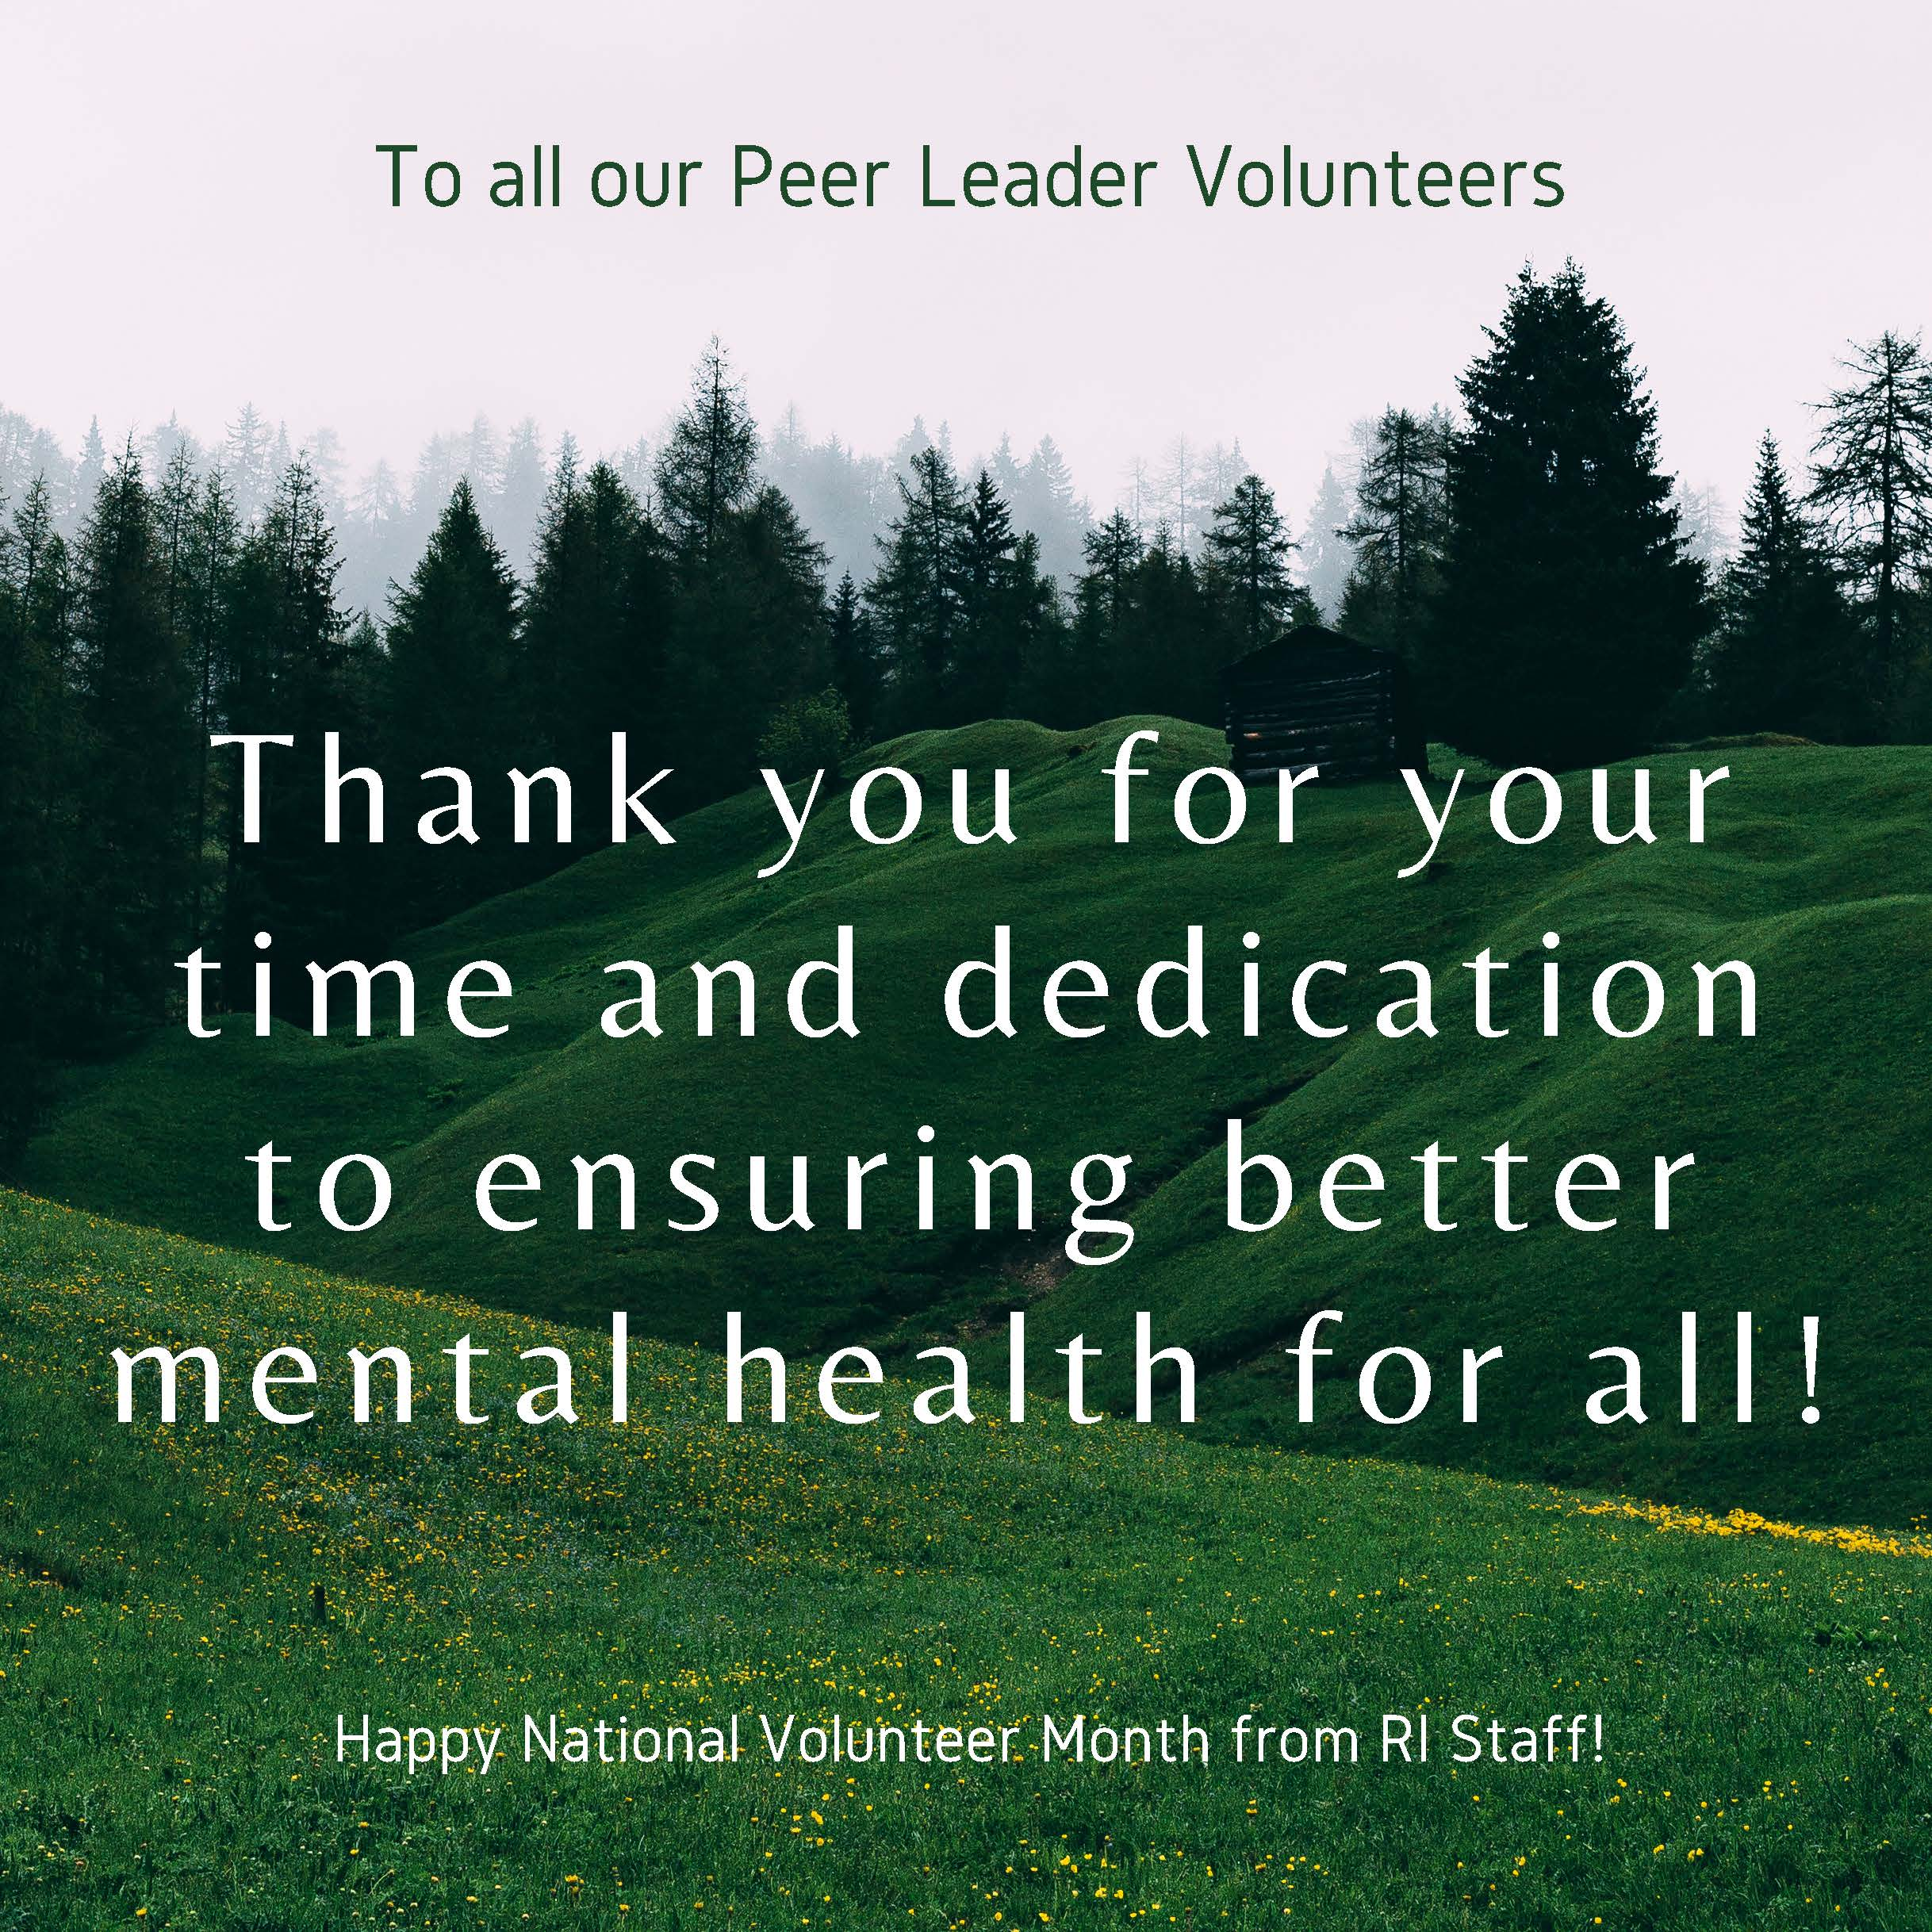 Thank you to all the RI volunteers